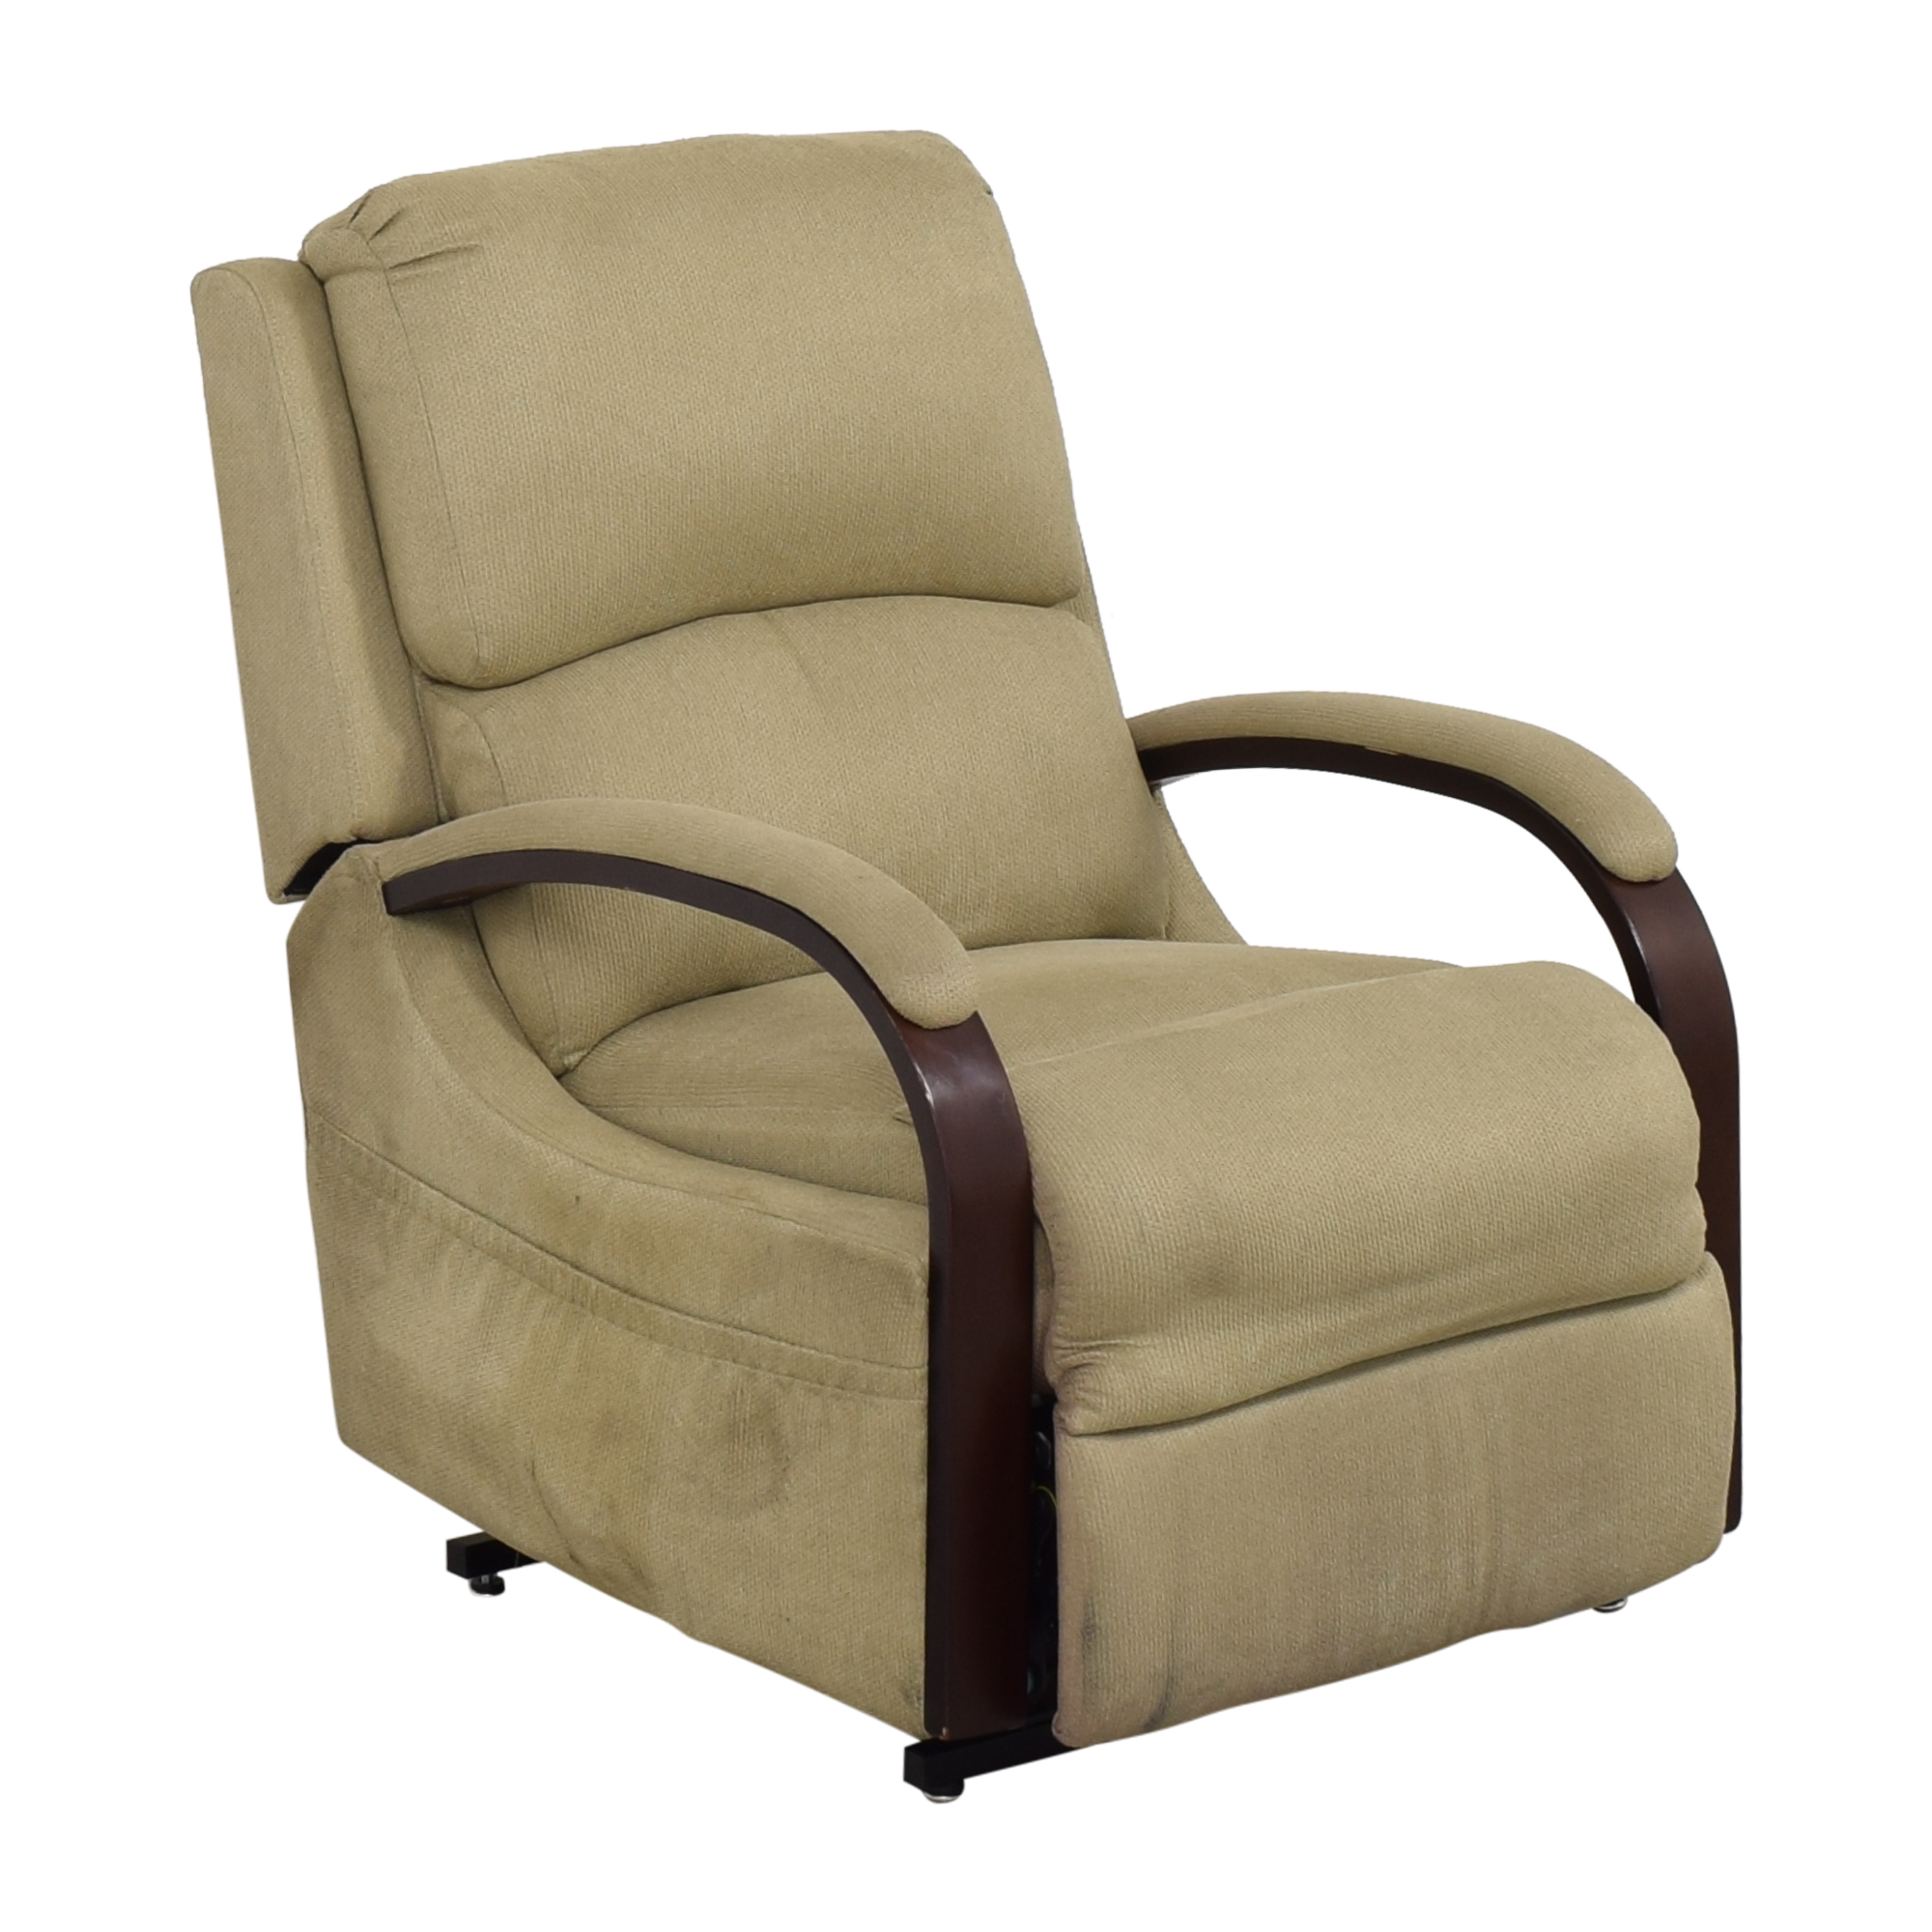 Macy's Power Lift Recliner Chair / Chairs